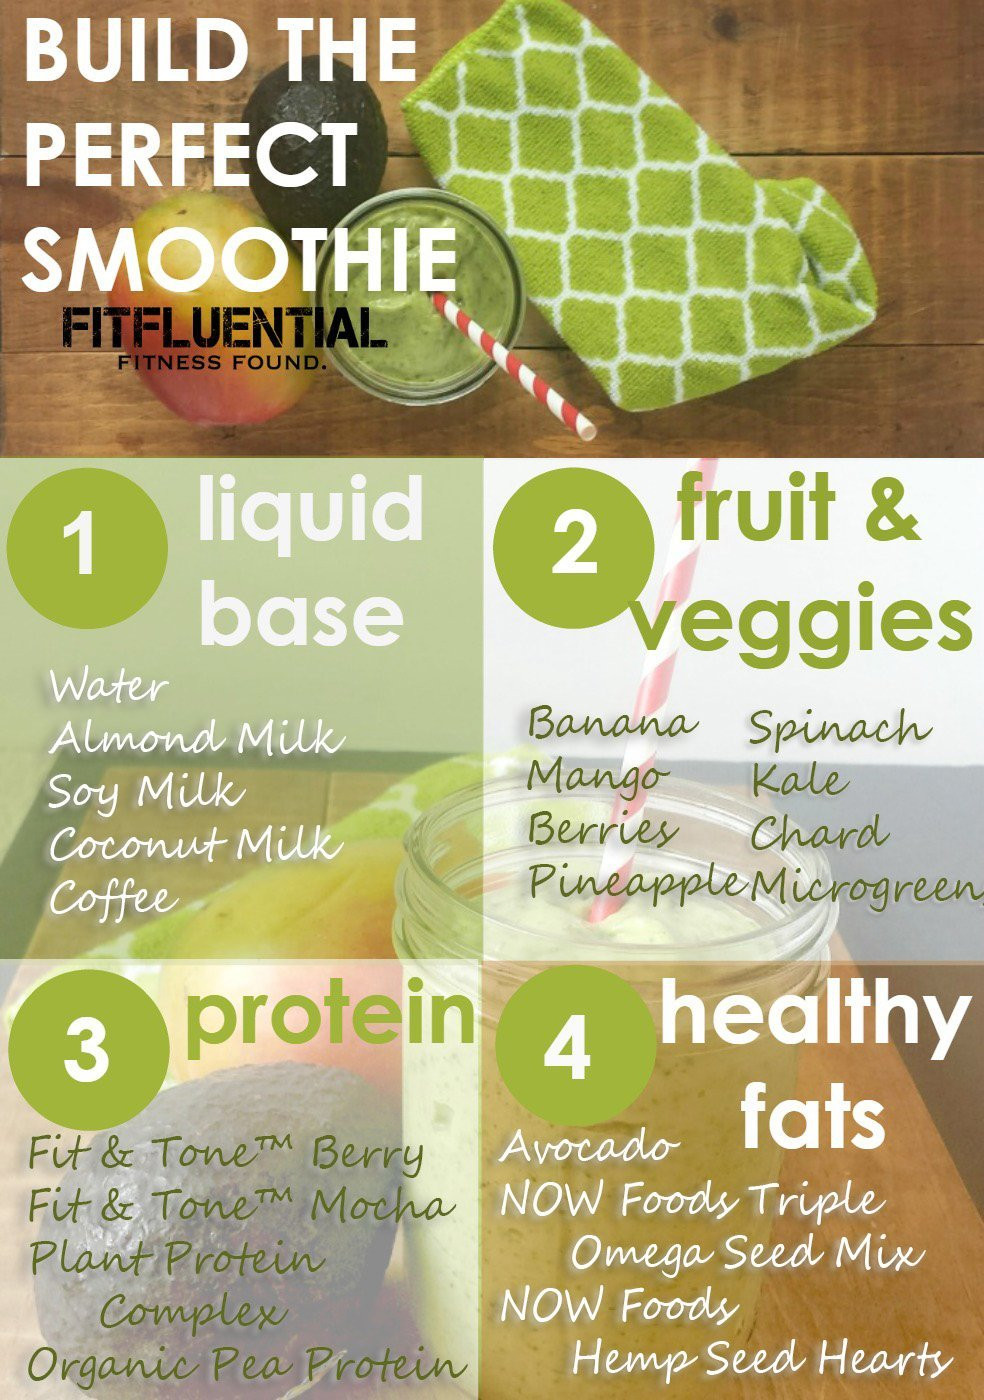 Meal Replacement Smoothie Recipes For Weight Loss  Meal Replacement Smoothie Staples